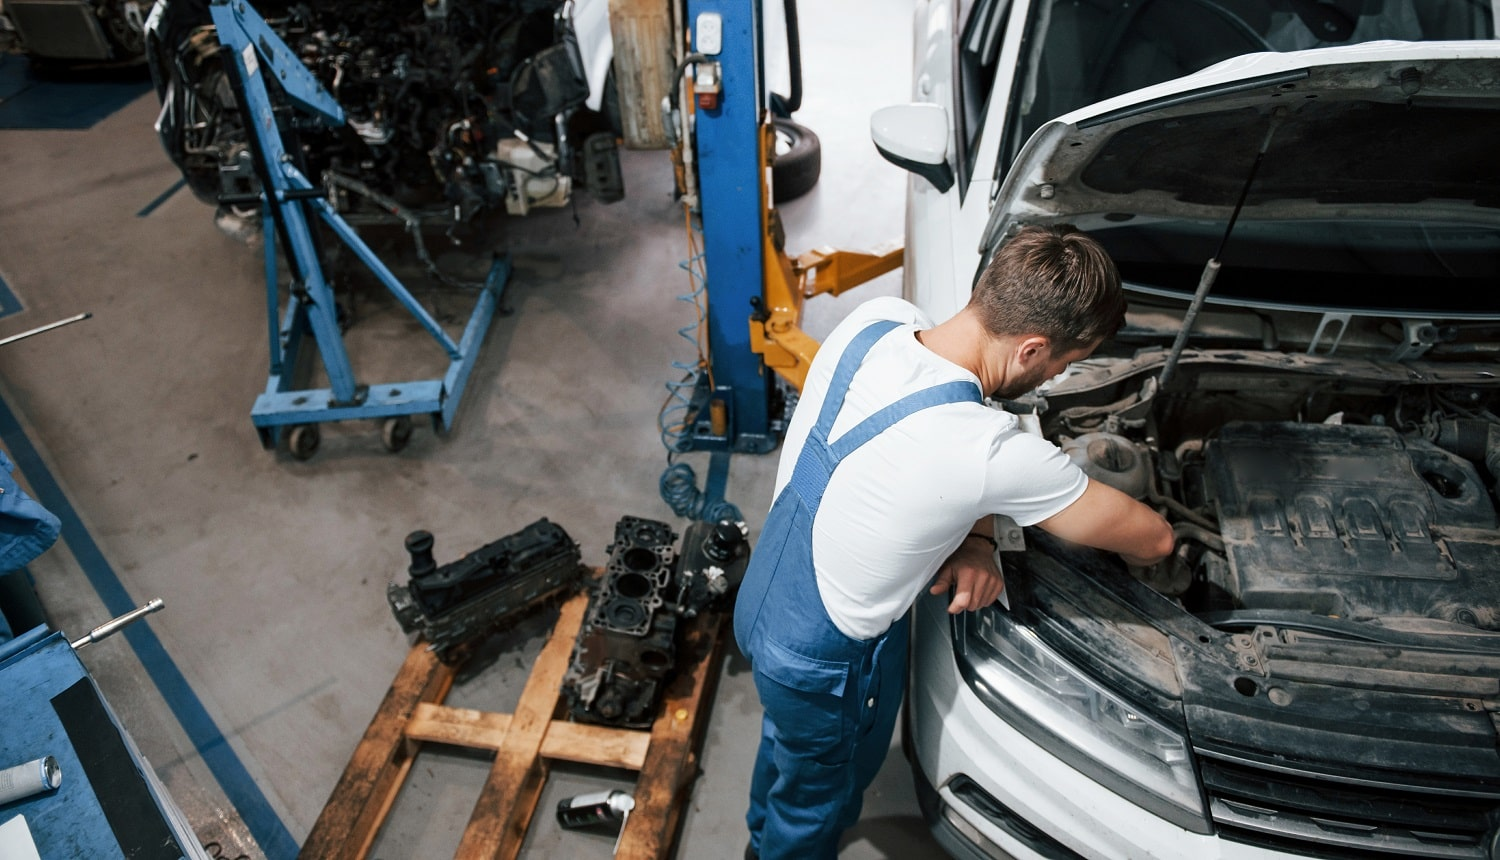 Luxury white car. Employee in the blue colored uniform works in the automobile salon.